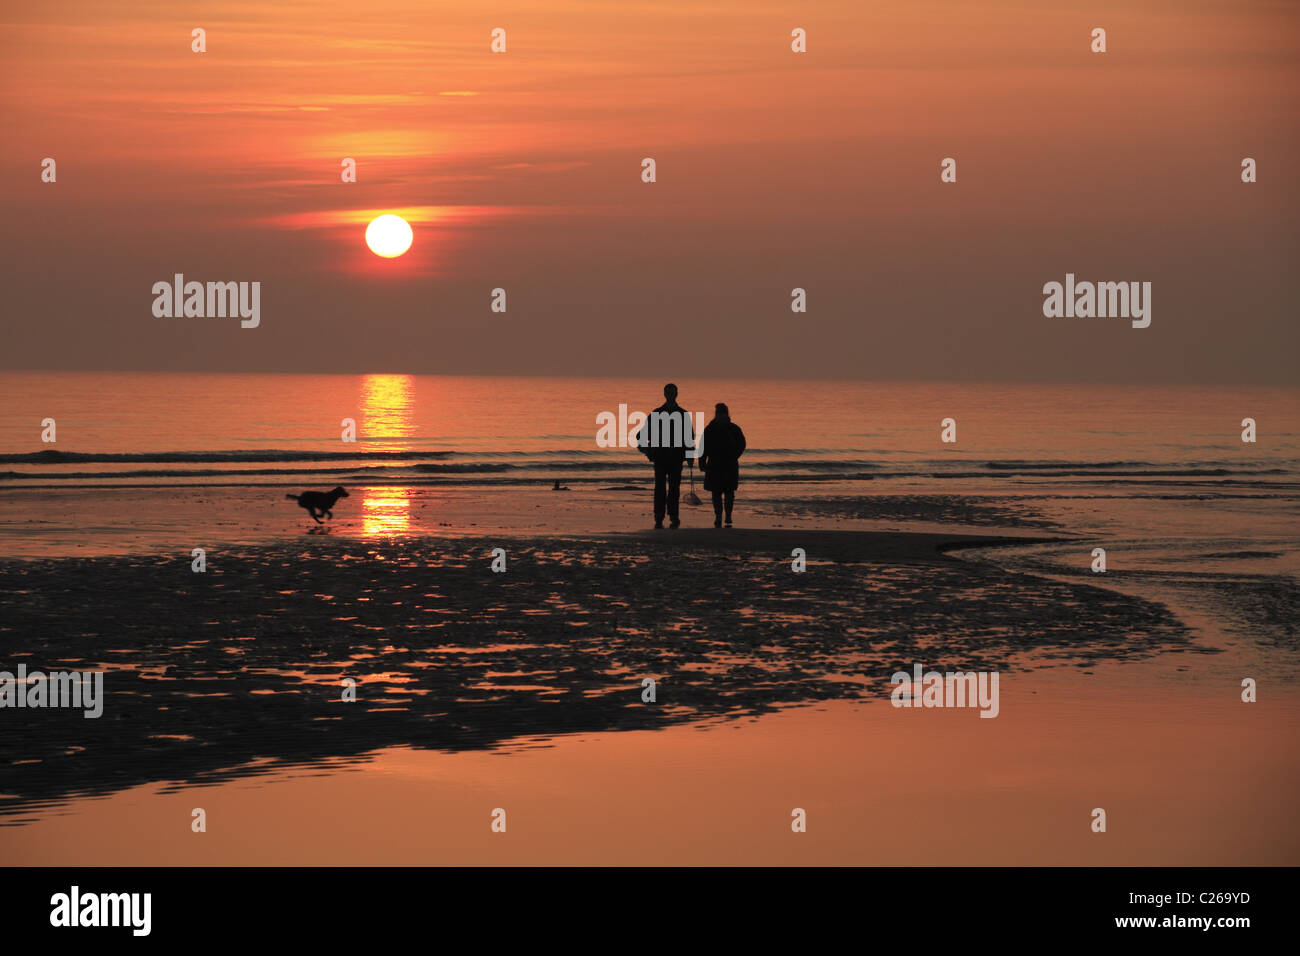 A couple watch the sunset over the sea at Birling Gap, East Sussex, England. - Stock Image